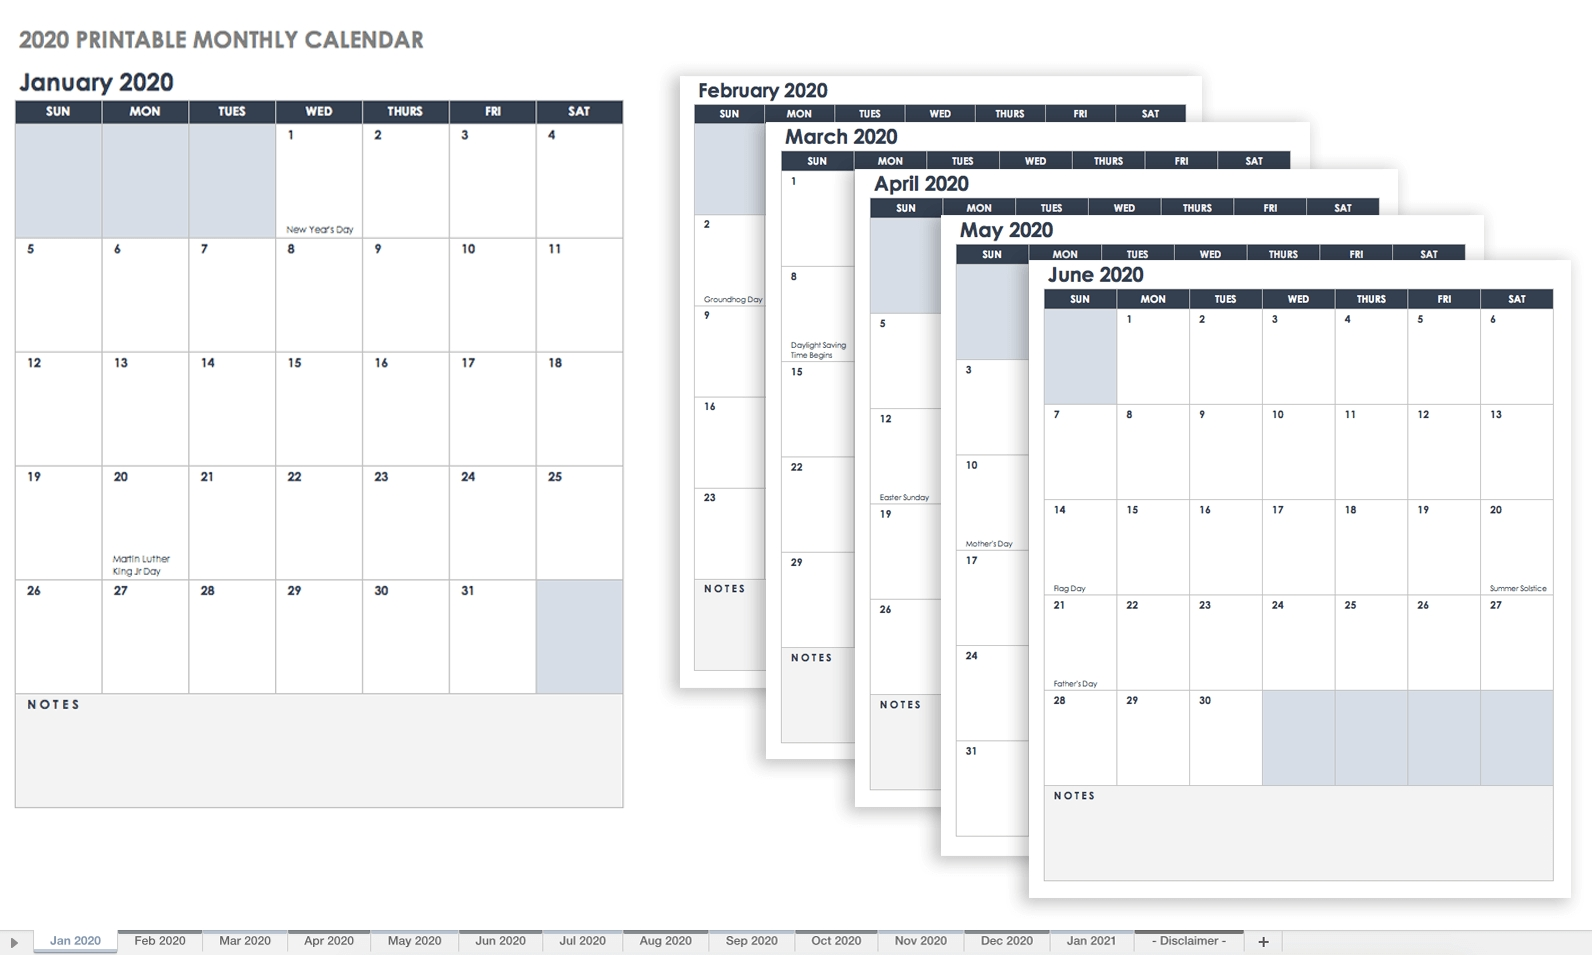 Free Blank Calendar Templates - Smartsheet  Blank Monthly Calendar With Lines